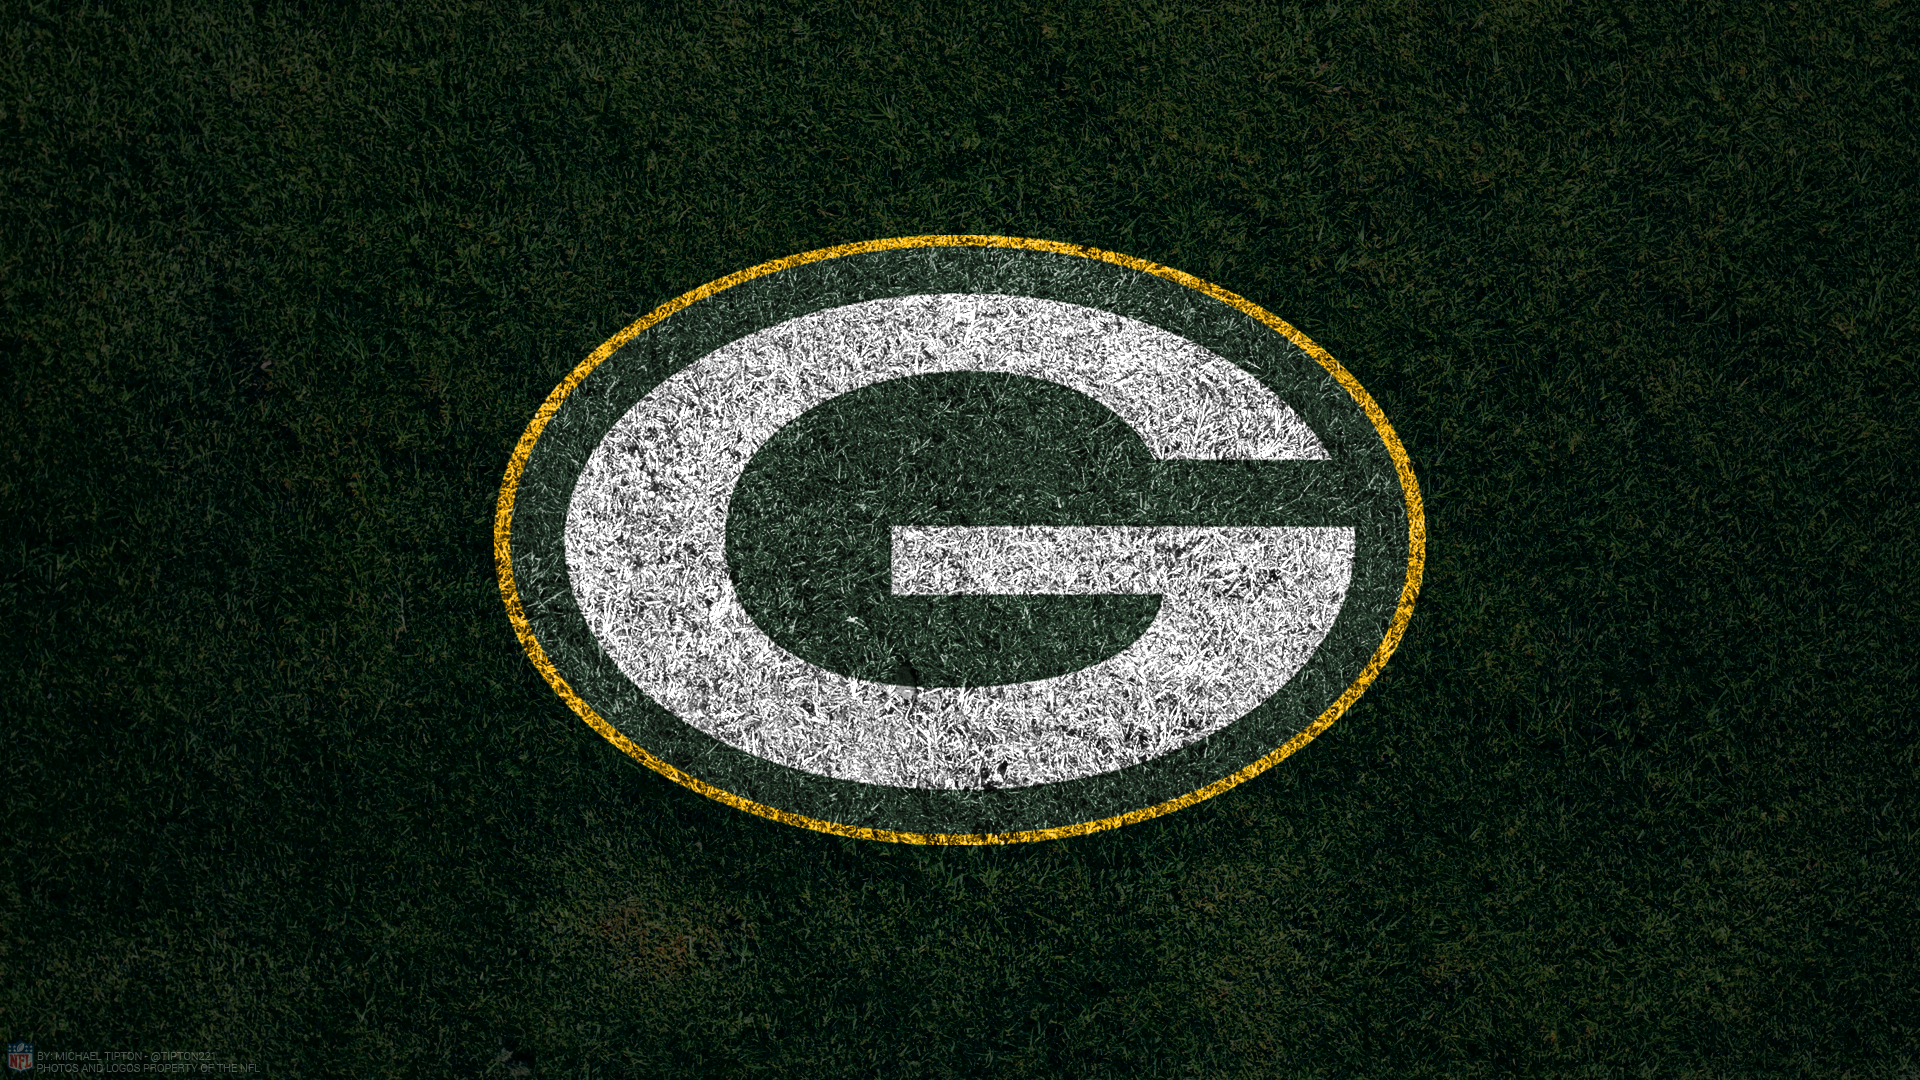 Green Bay Packers Hd Wallpaper Background Image 1920x1080 Id